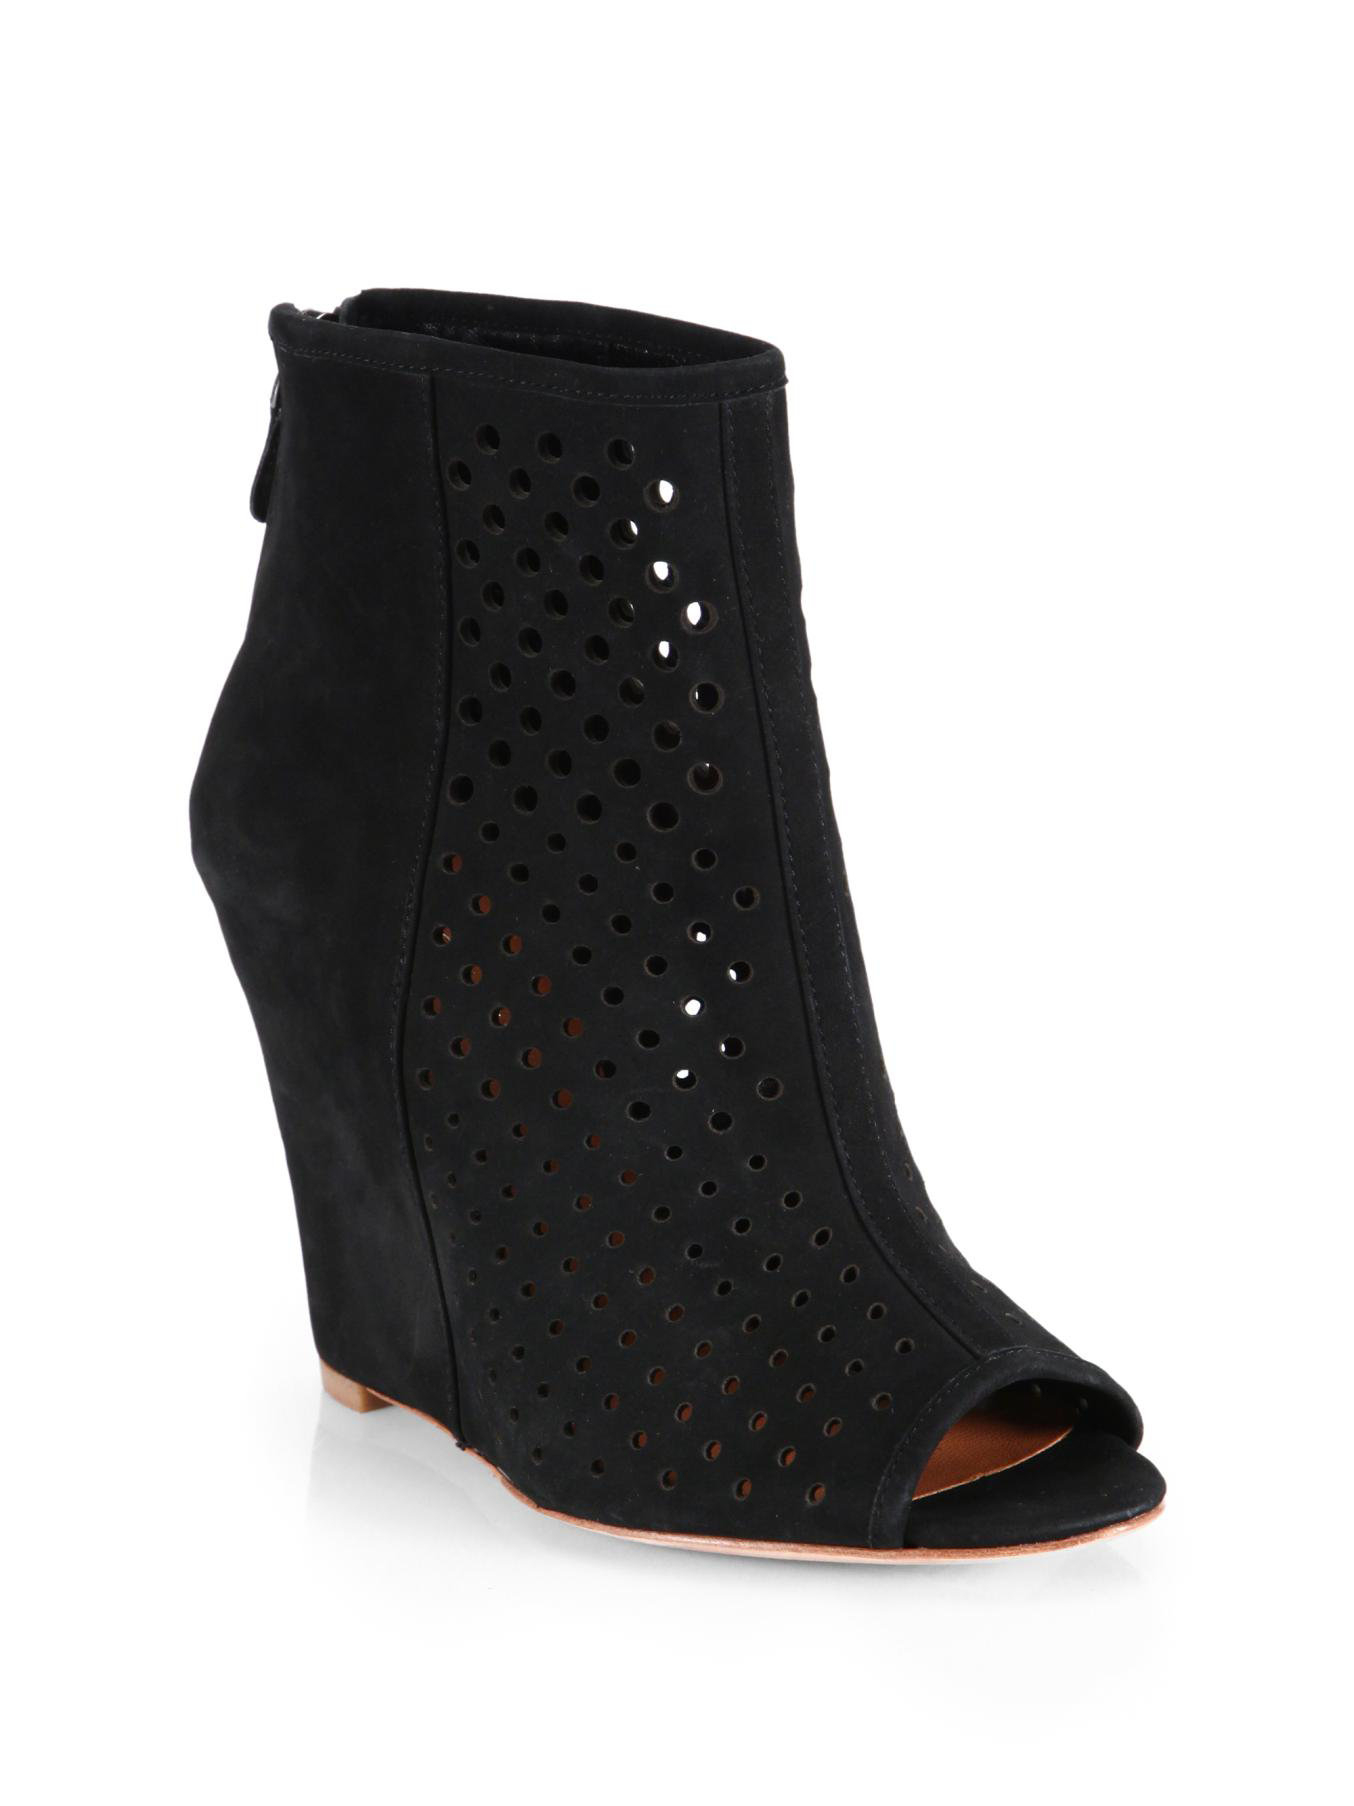 minkoff suede peep toe wedge ankle boots in black